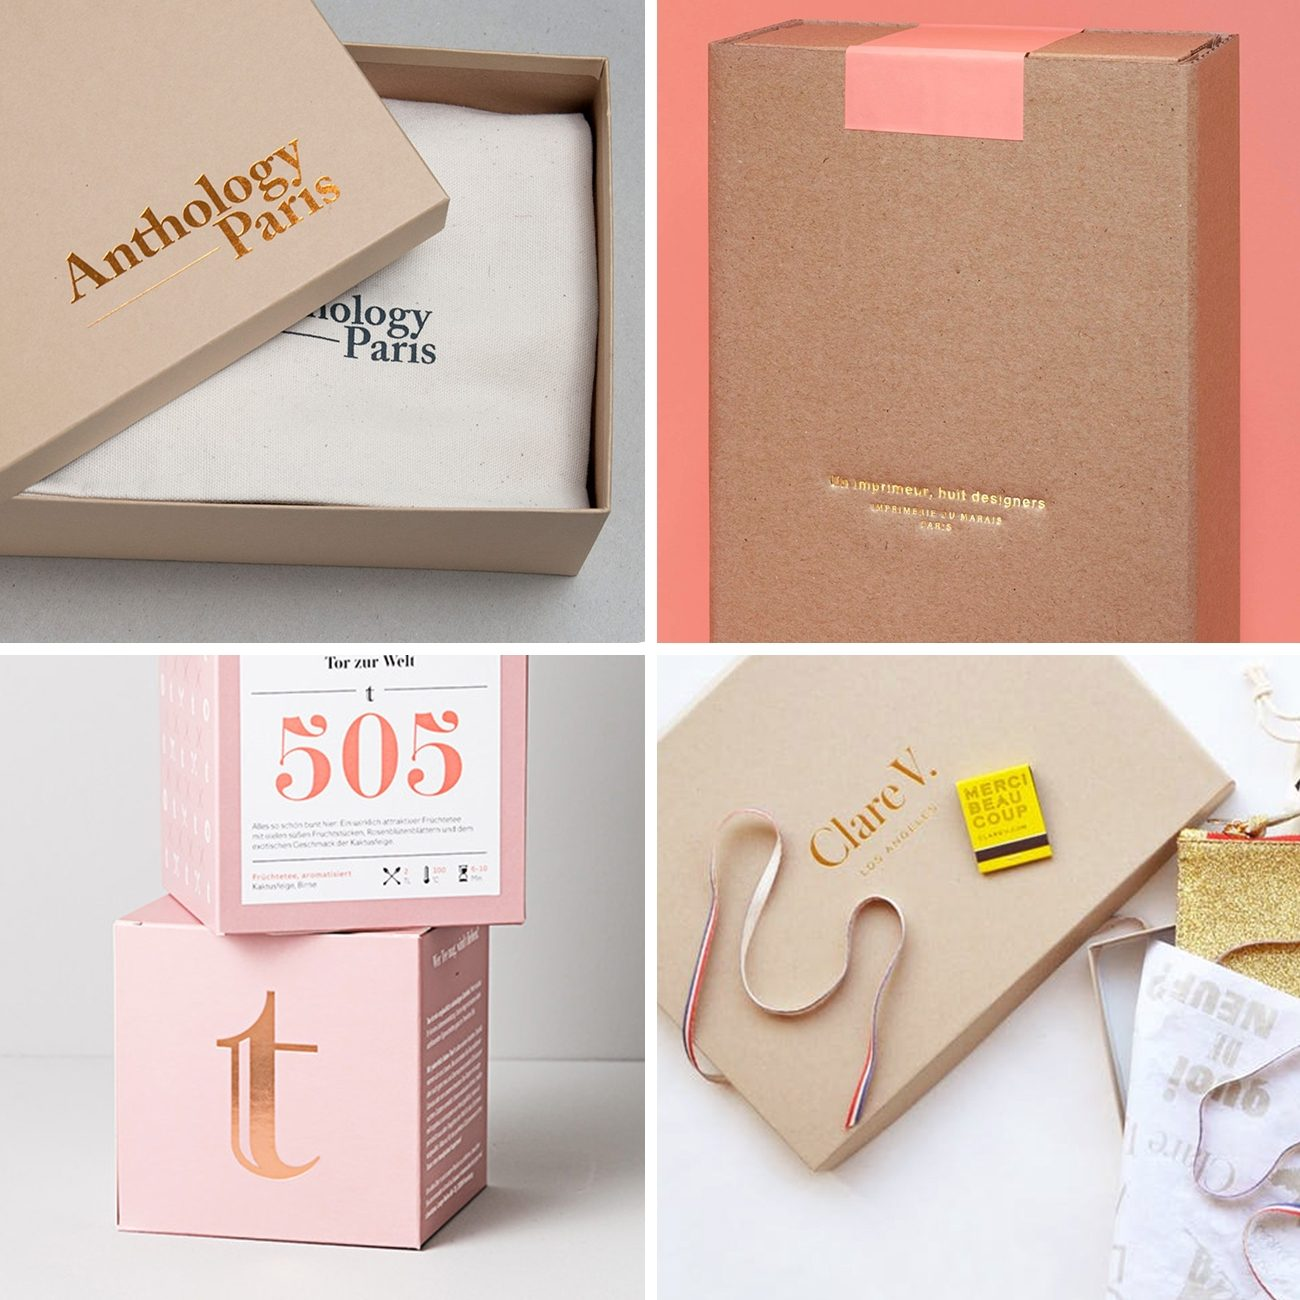 Photos via: Parametro Studio, Studio Plastac, Braeutigam Rotermund, Clare V 90 Ideas to Spruce Up Your Holiday Packaging Design